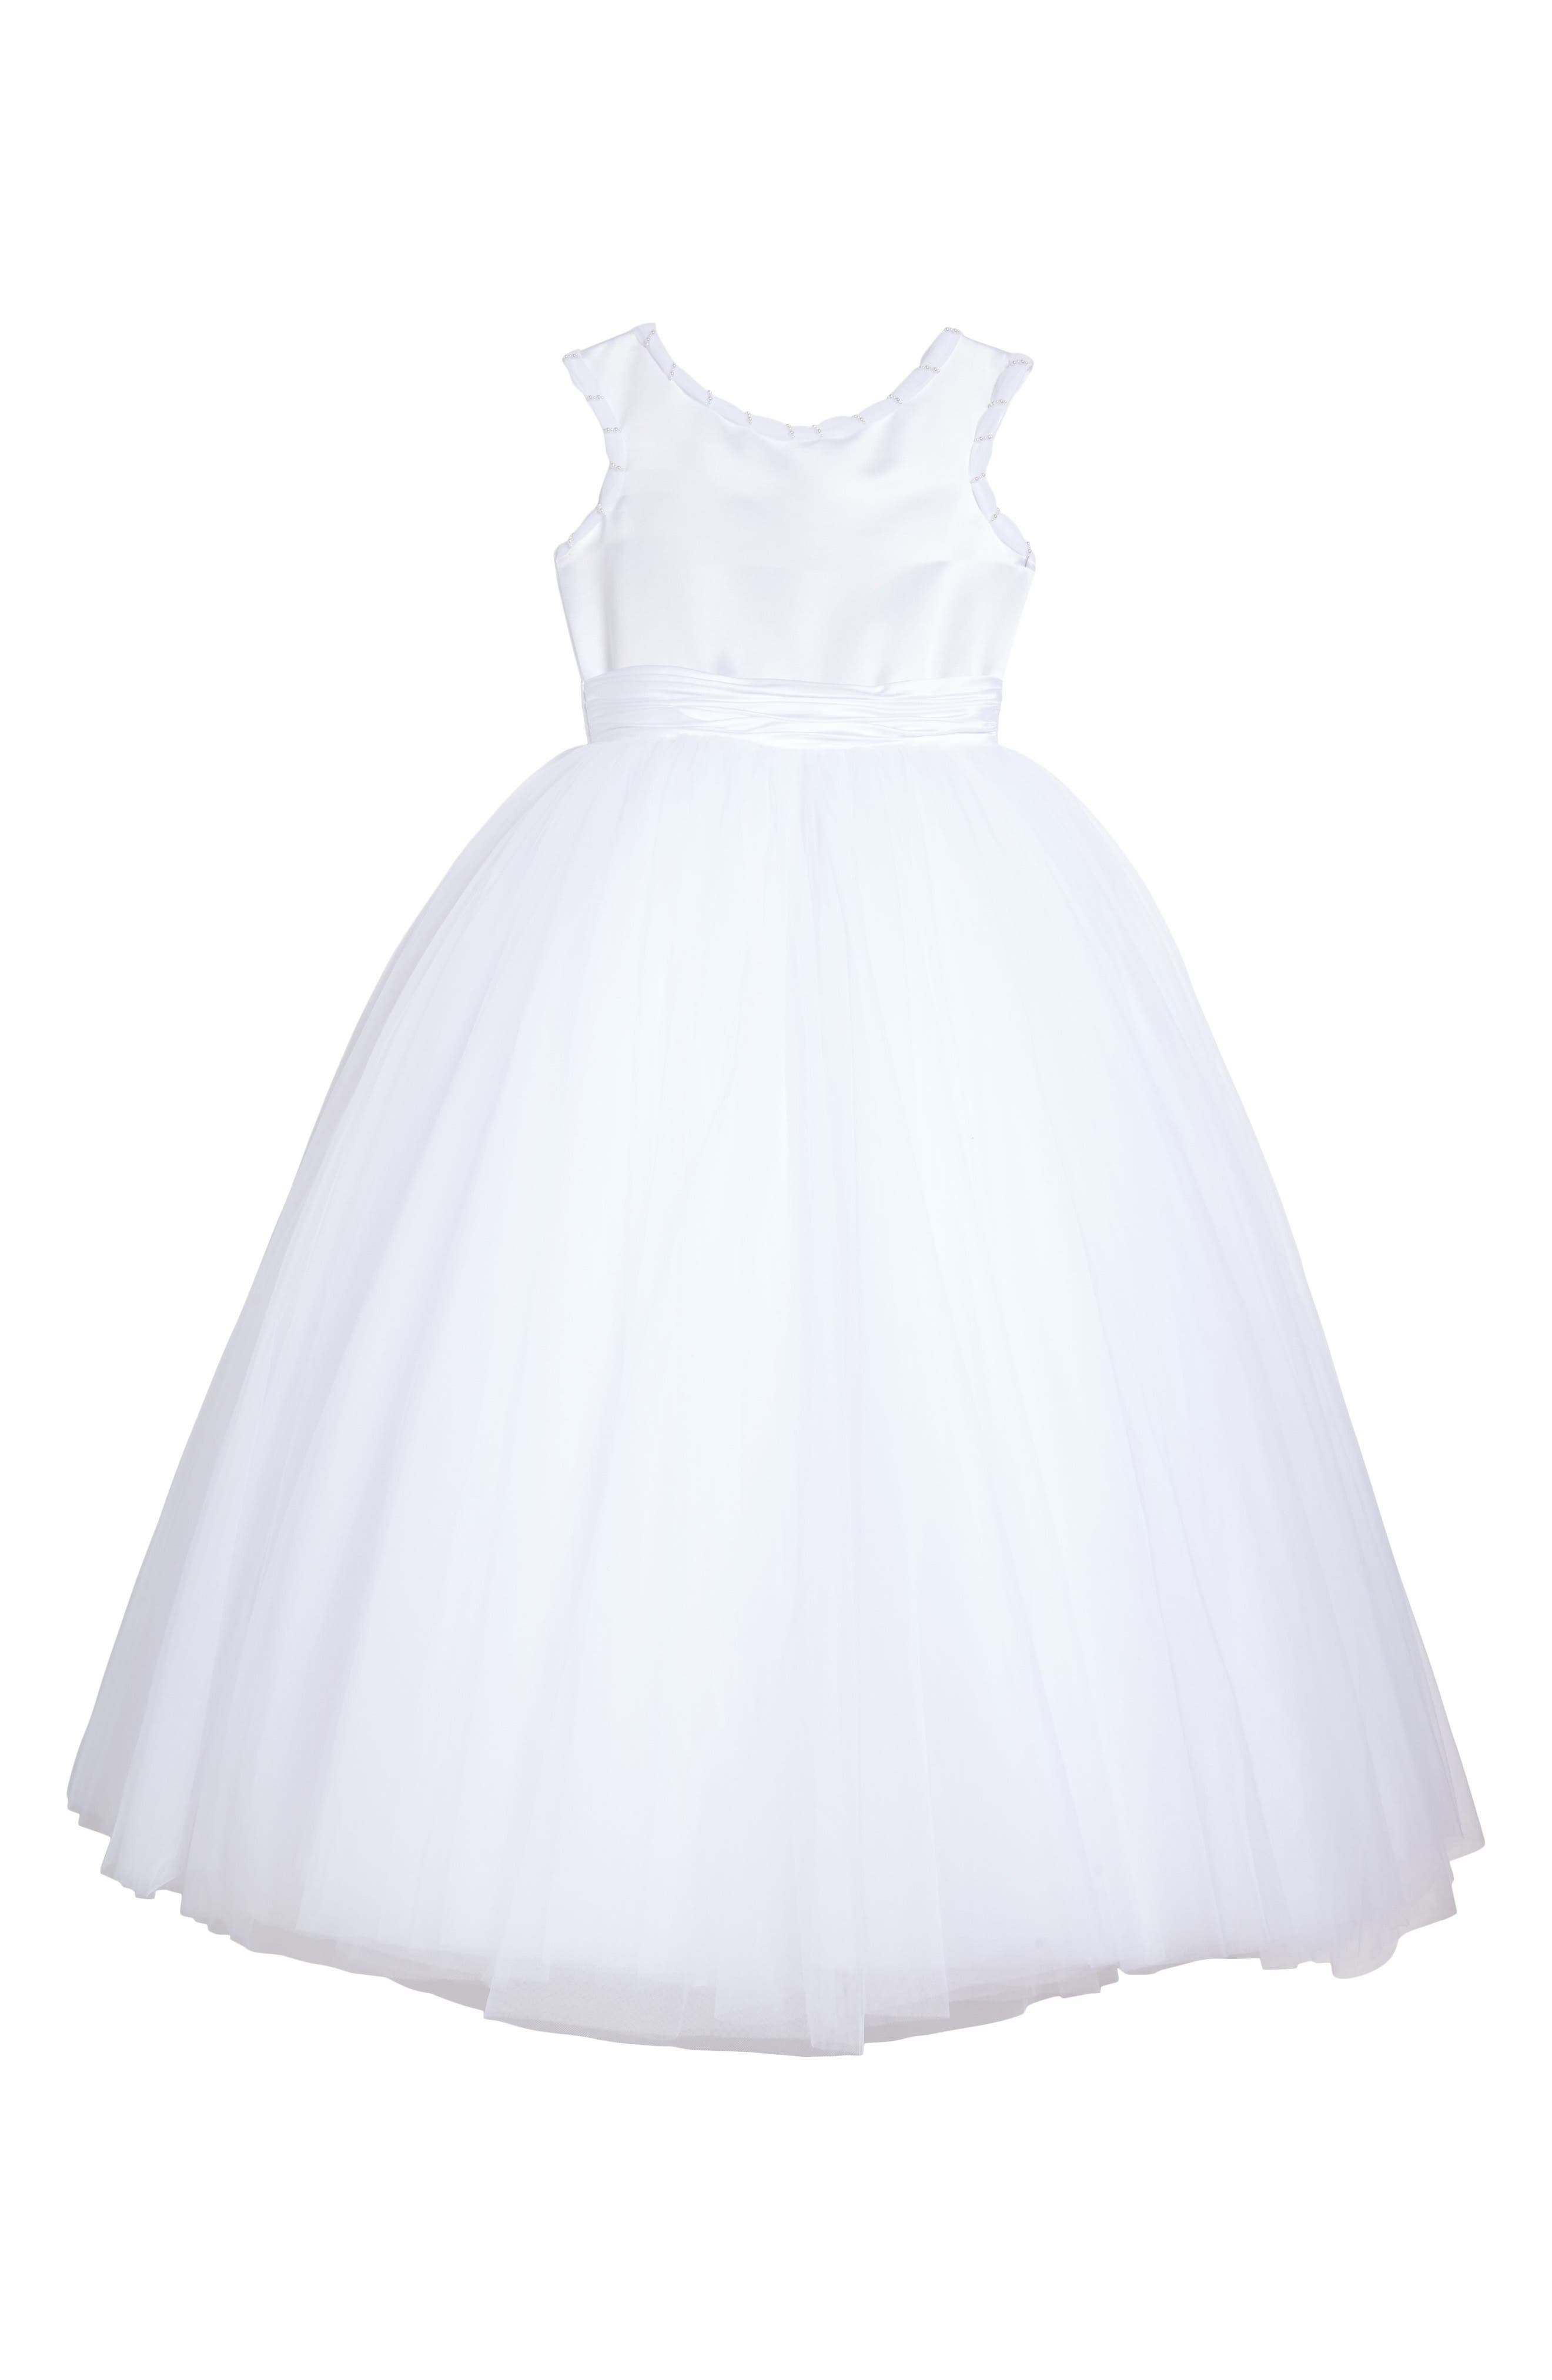 Alternate Image 1 Selected - Joan Calabrese for Mon Cheri Tulle Dress (Little Girls & Big Girls)